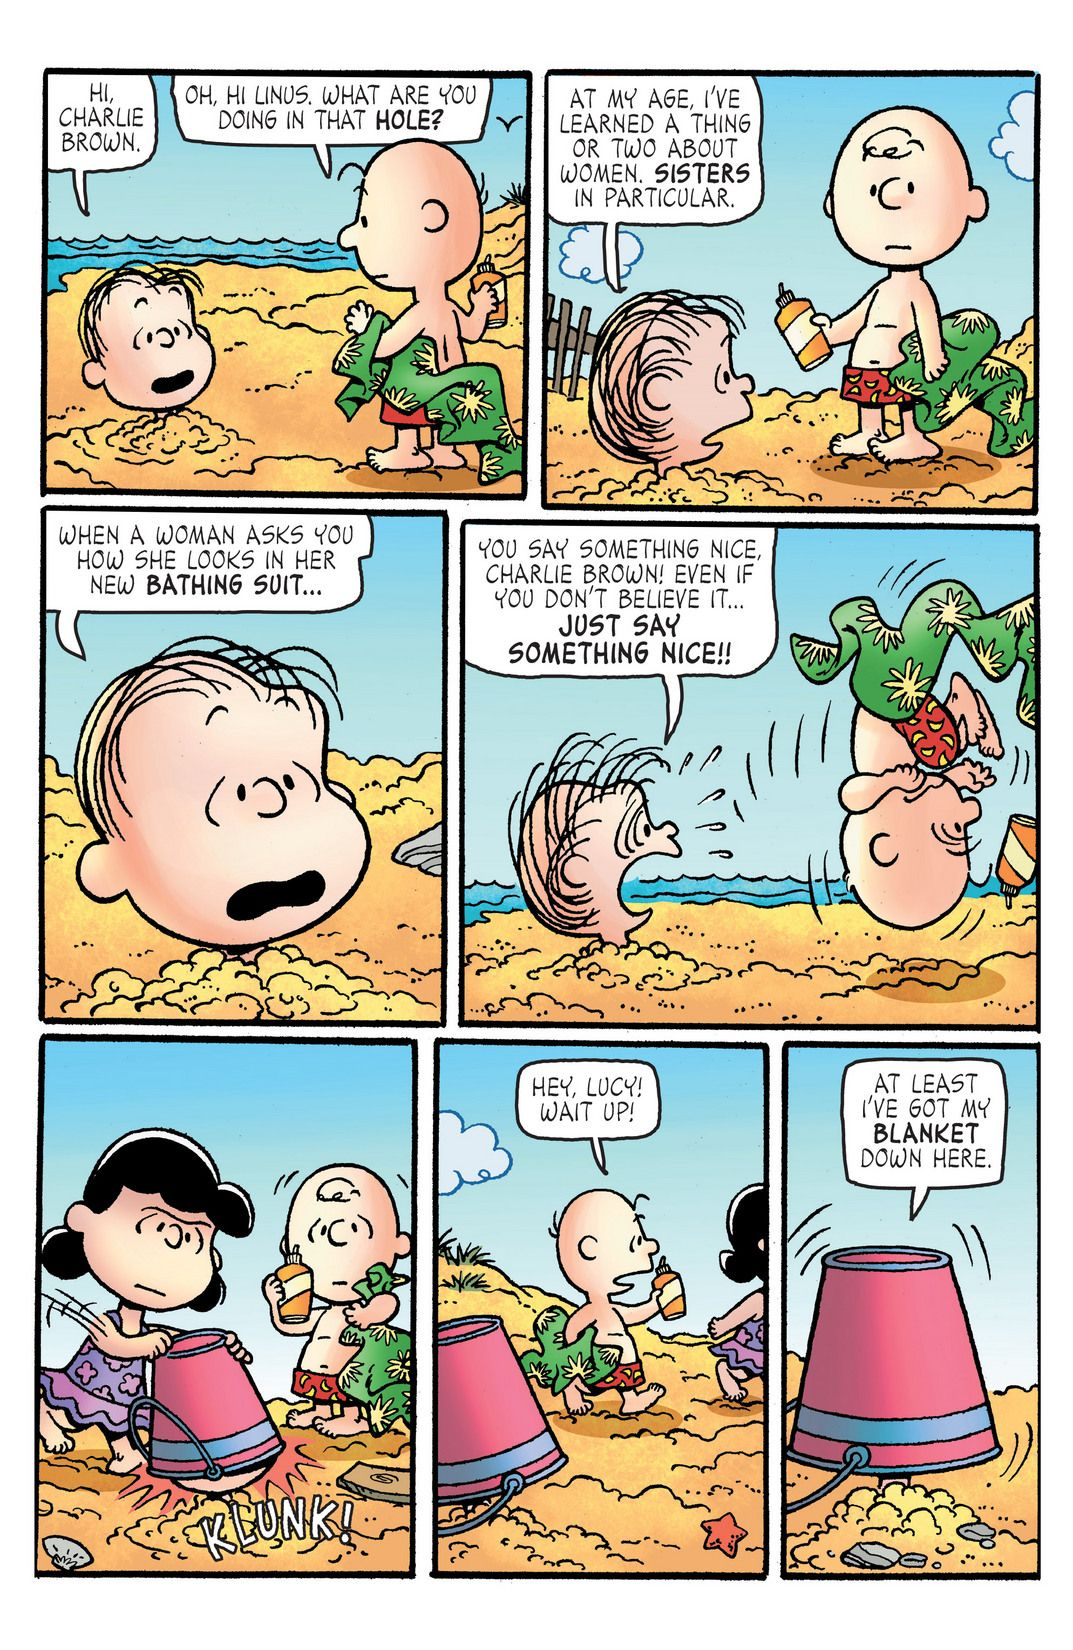 Hi, Charlie Brown. Oh, hi, Linus. What are you doing in that HOLE? At my age, I've learned a thing, or two, about women. SISTERS, in particular. When a woman asks you how she looks in her new BATHING SUIT... You say something nice, Charlie Brown, even if you don't believe it... JUST SAY SOMETHING NICE!! Hey, Lucy! Wait up! At least, I've got my blanket down here.